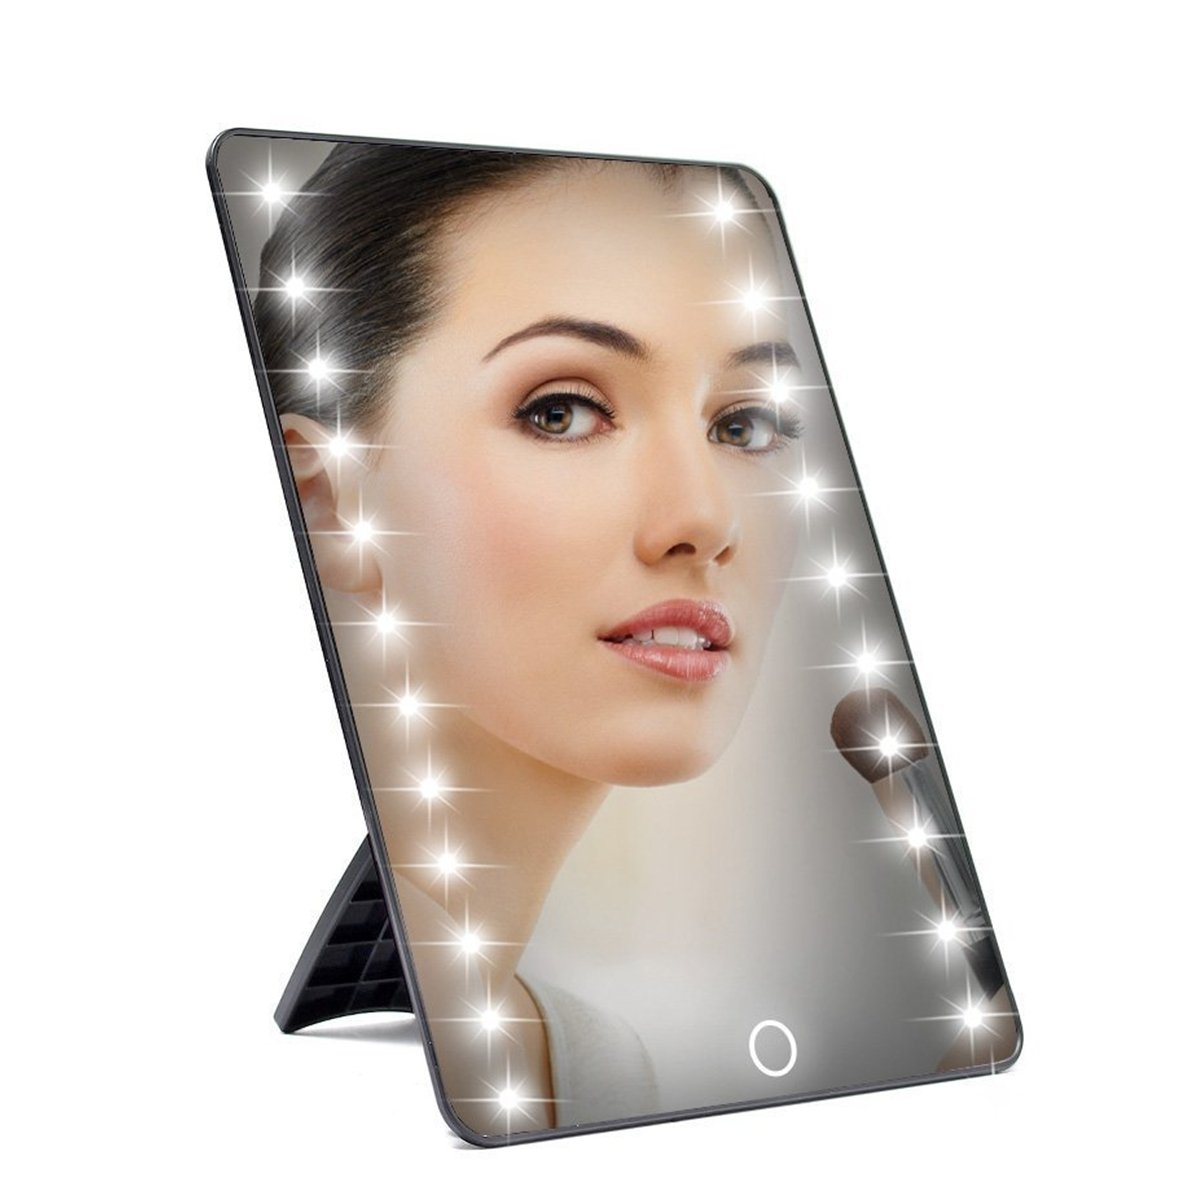 Foldable Lighted Vanity Mirror,Charminer Smart Touch 16LED Light Makeup Mirror Adjustable Brightness Illuminated Cosmetic Countertop Table Mirror Touching ON/OFF